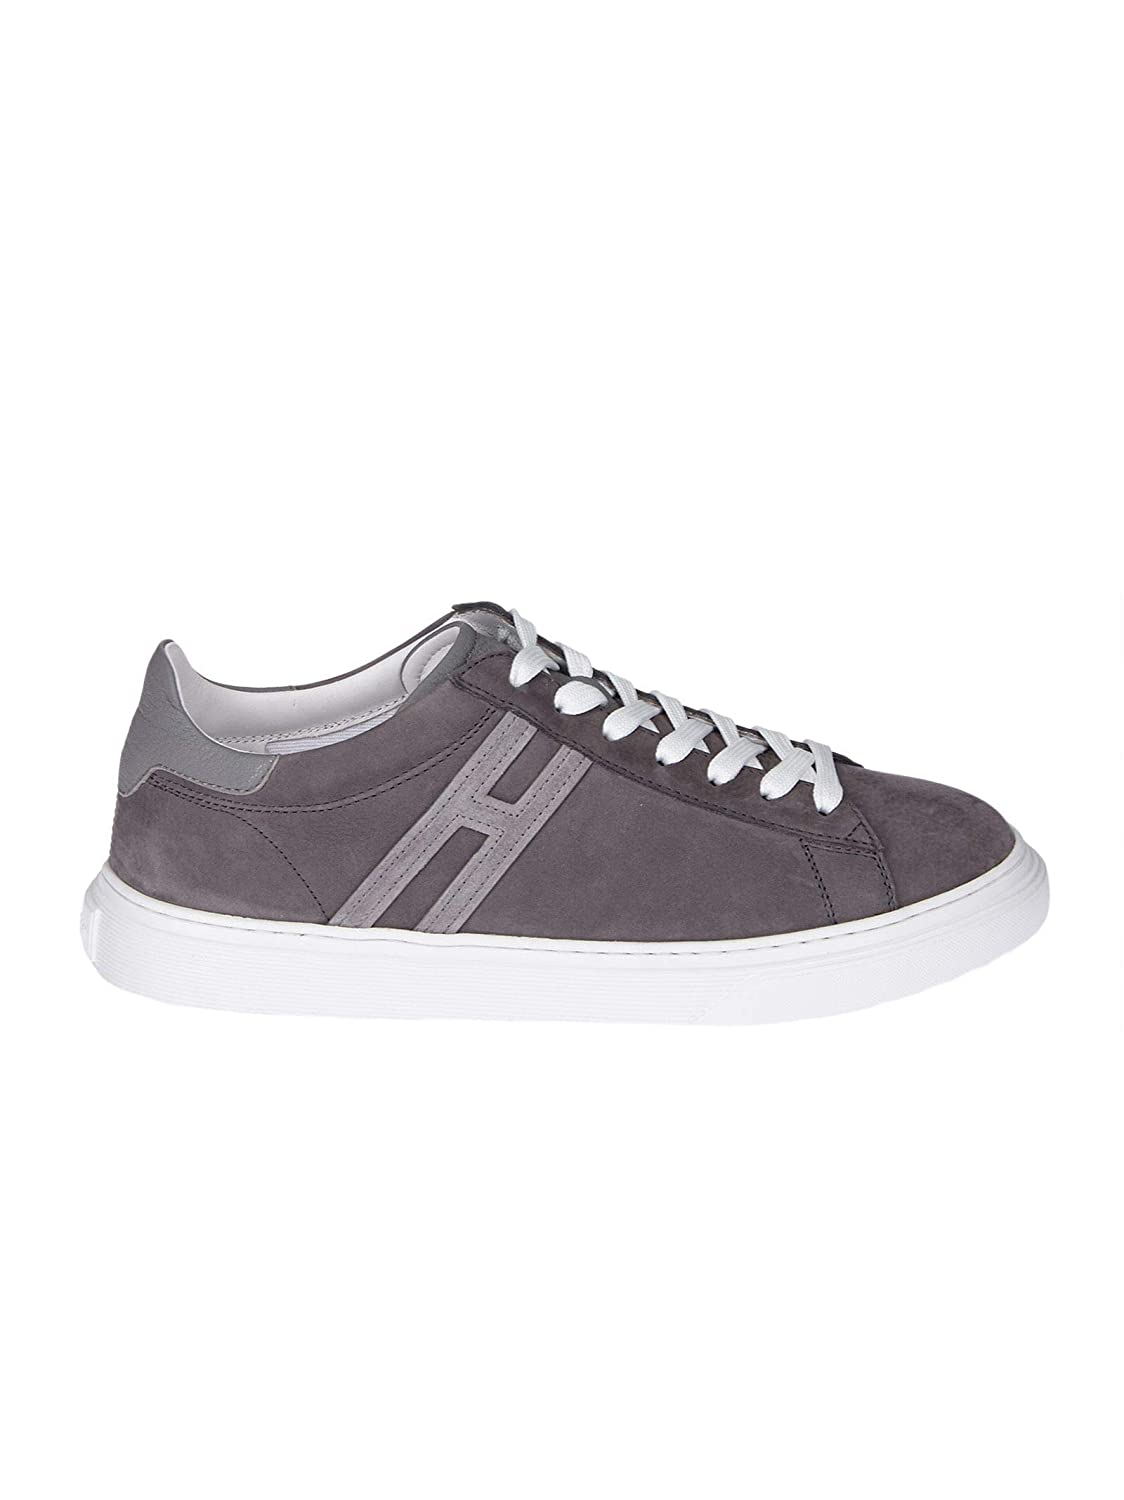 - Hogan Men's HXM3650J960I7PB414 Grey Leather Sneakers